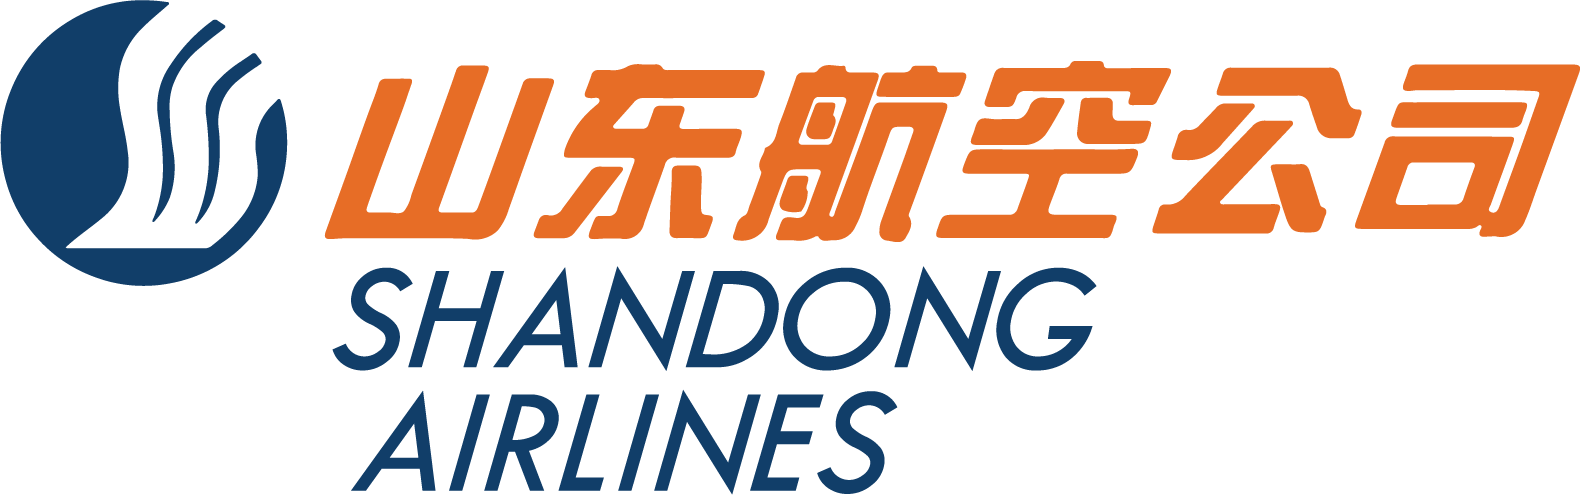 Shandong Airlines Logo png